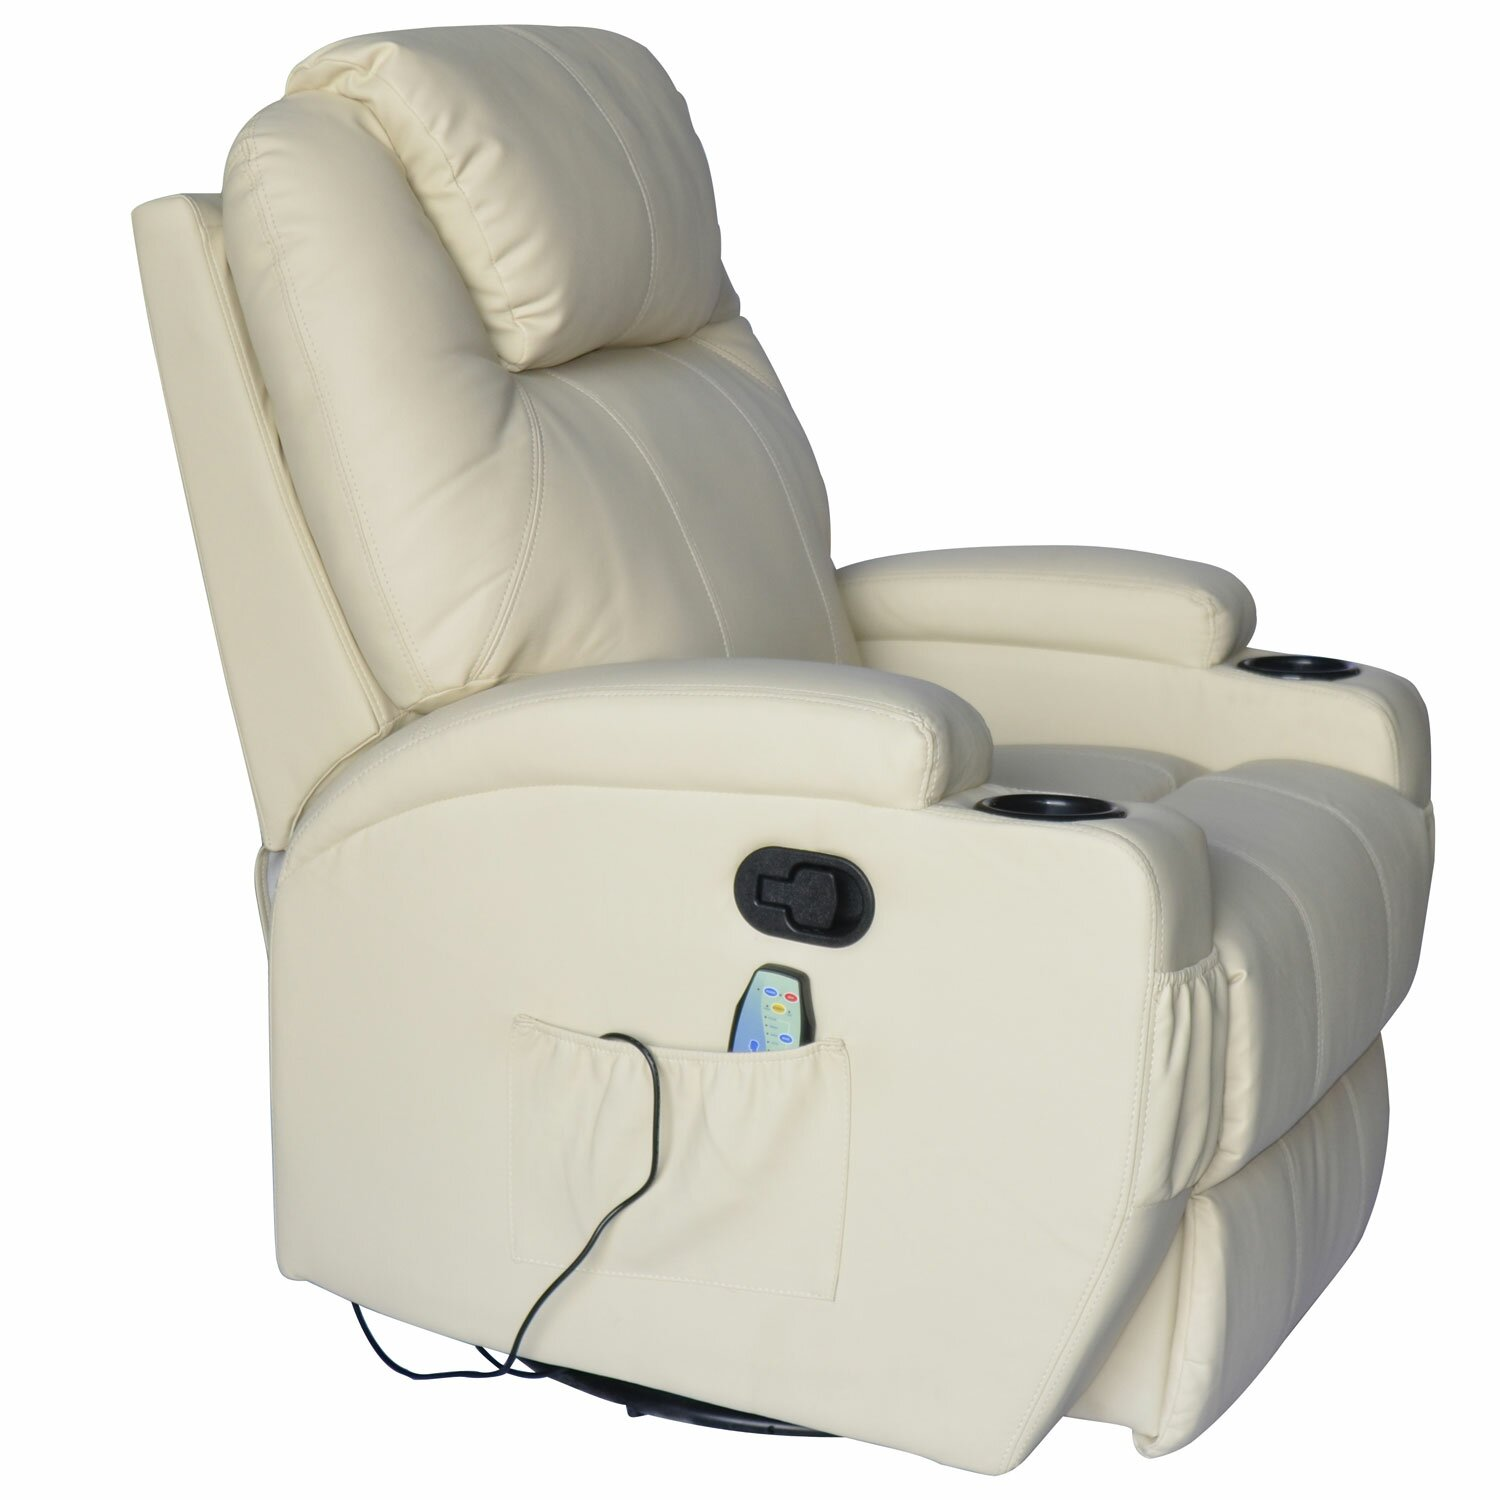 Outsunny Hom Deluxe Heated Vibrating PU Leather Massage